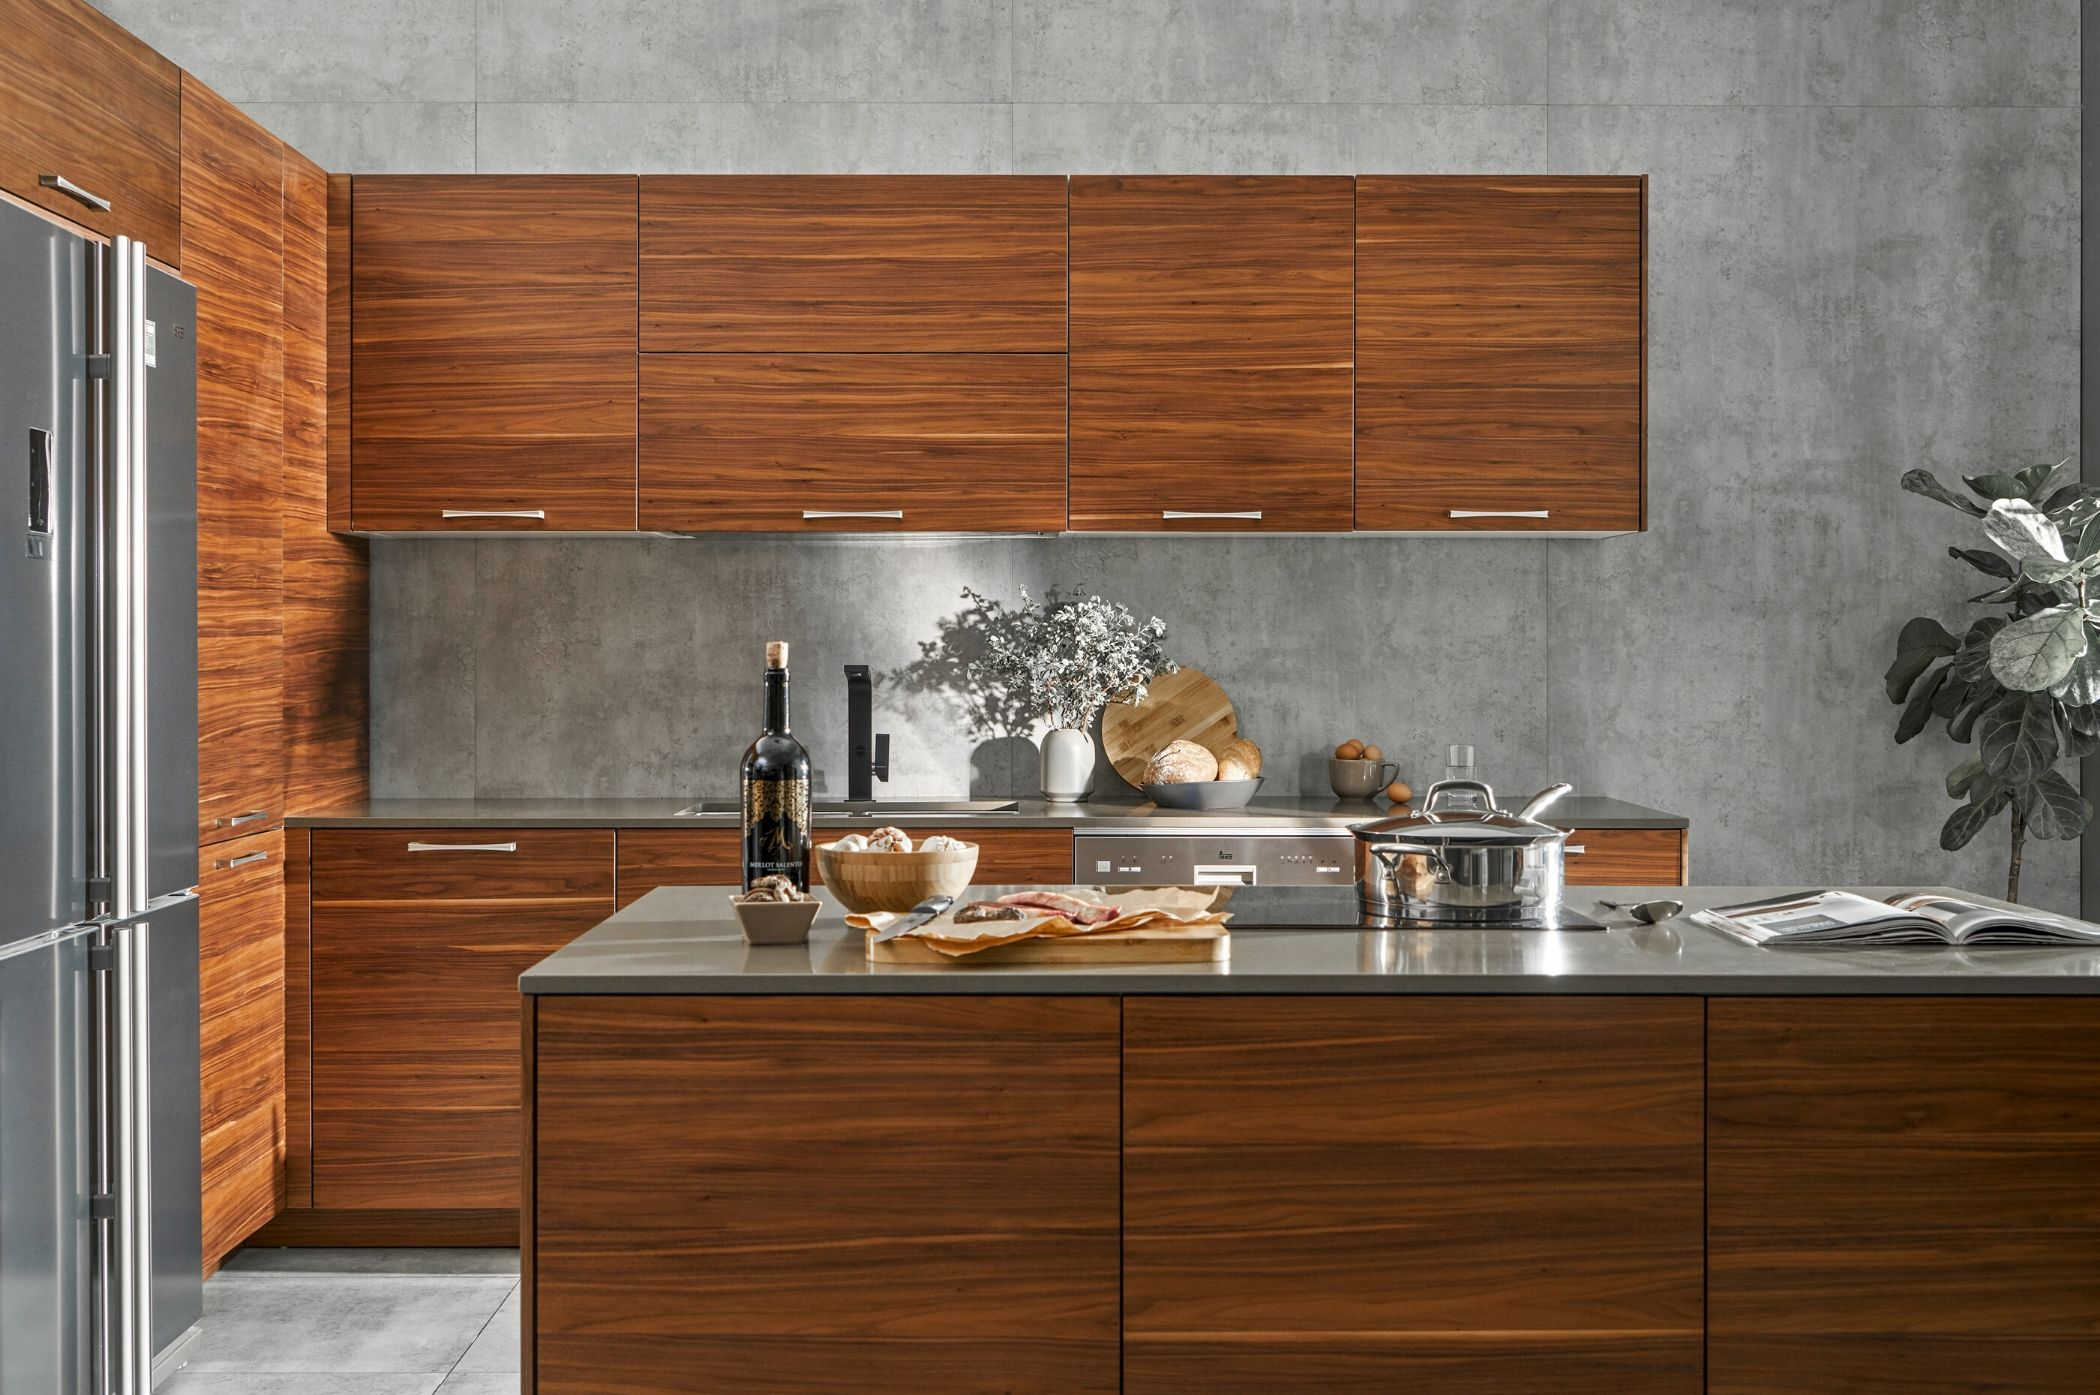 Incredible natural wood kitchen cabinets made of walnut ...